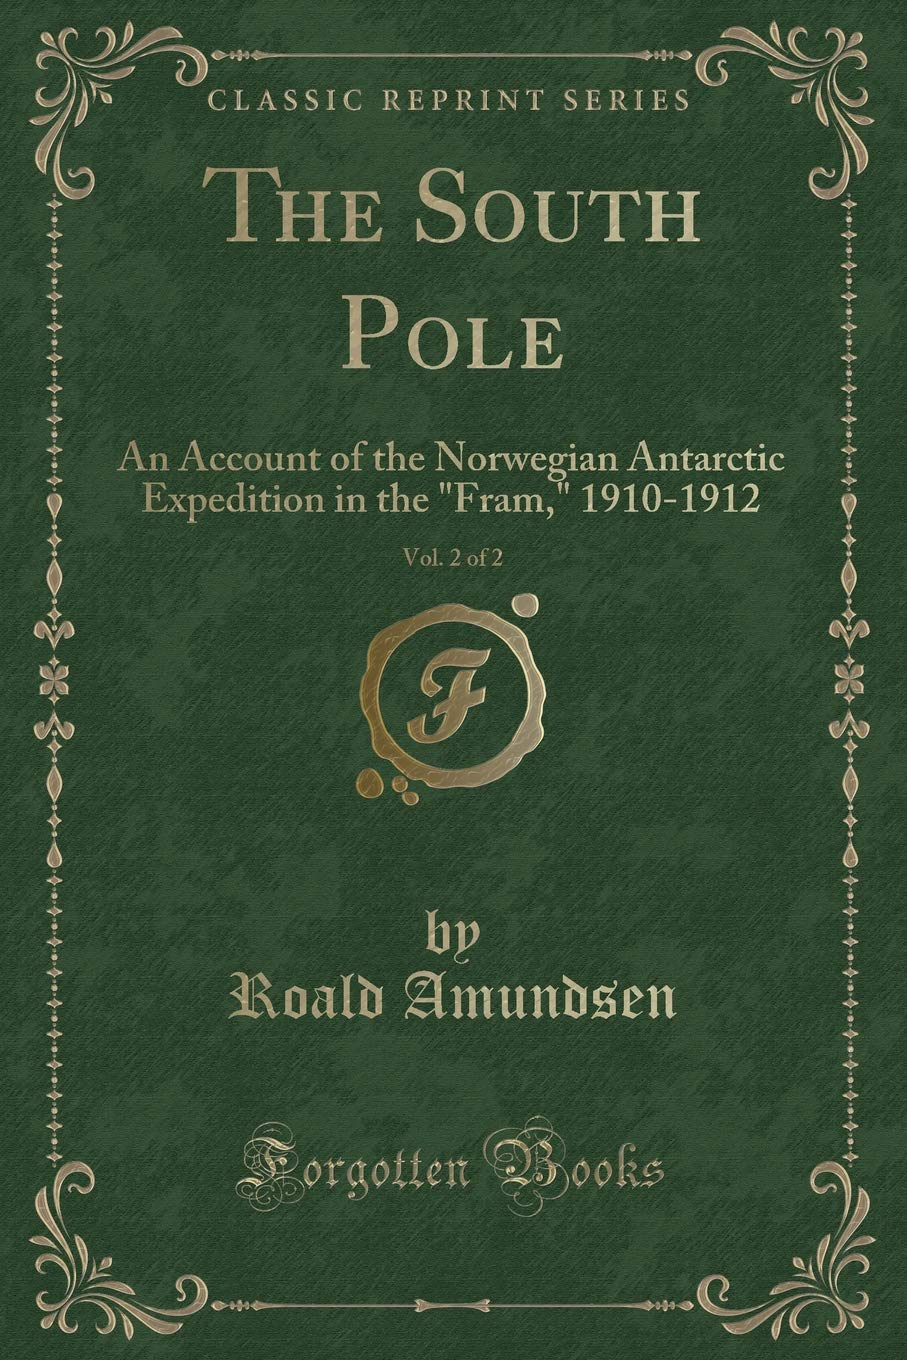 """The South Pole, Vol. 2 of 2: An Account of the Norwegian Antarctic Expedition in the """"Fram,"""" 1910-1912 (Classic Reprint) pdf"""